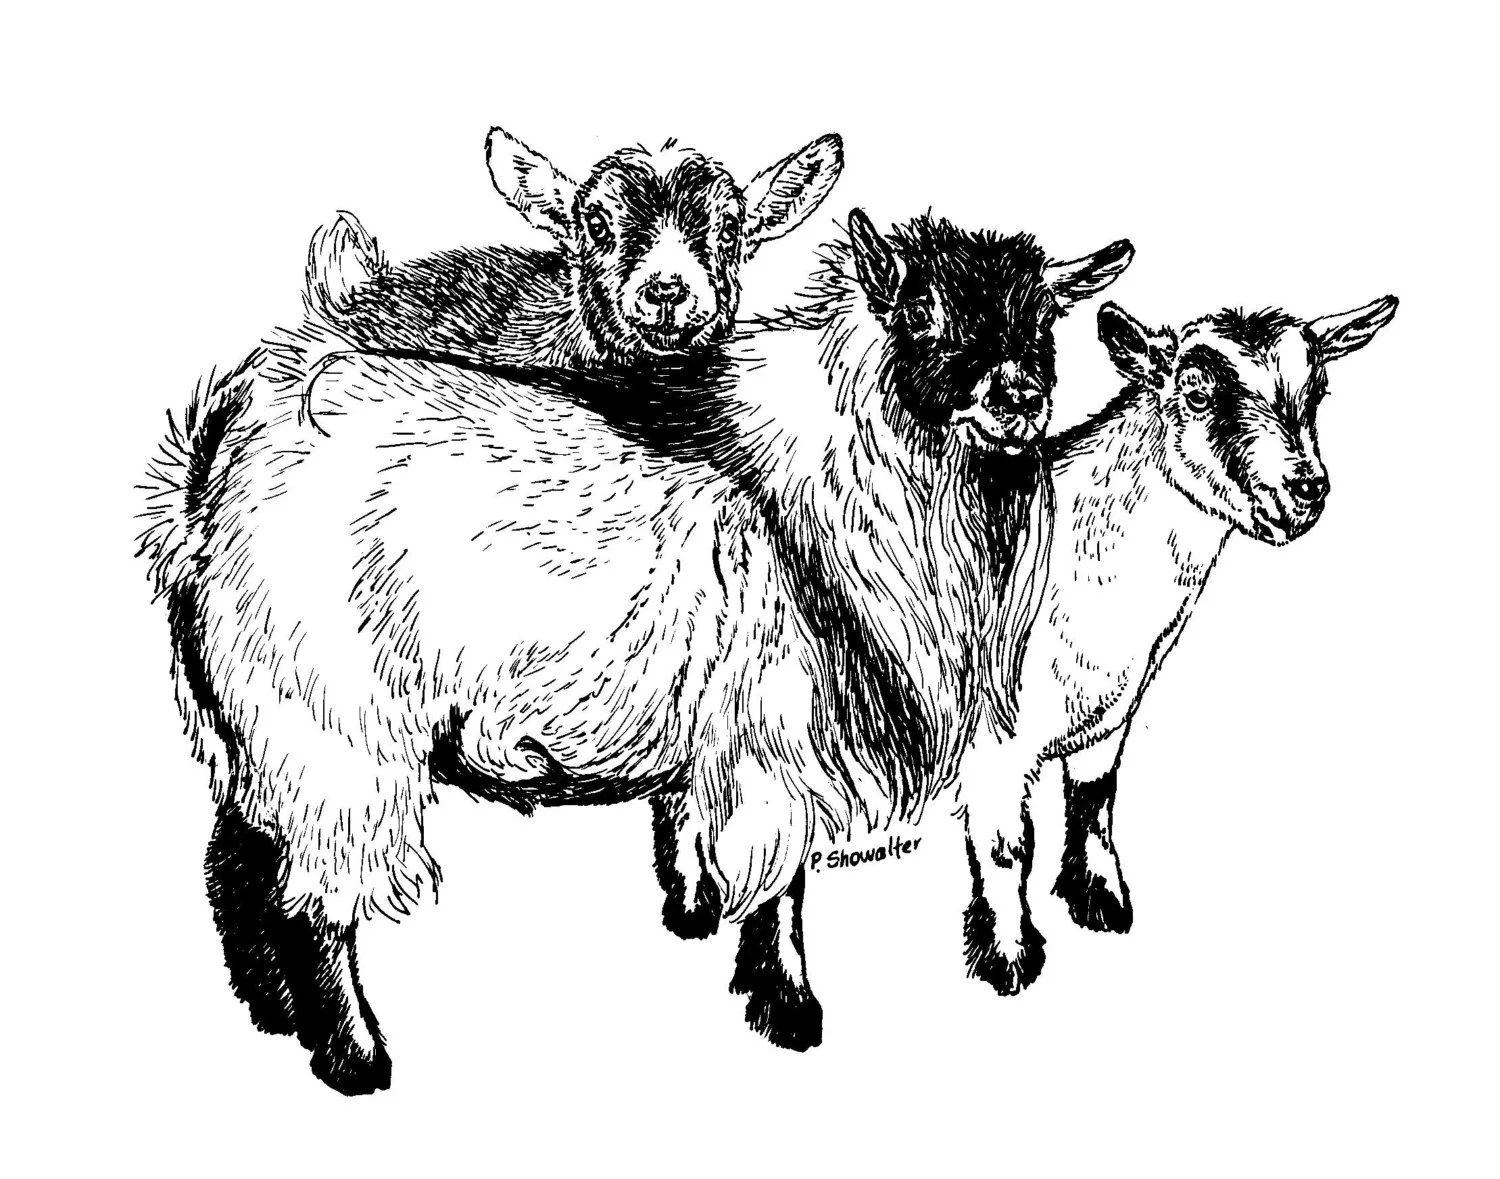 Original Of The Pen And Ink Pygmy Goat Drawing By Pat